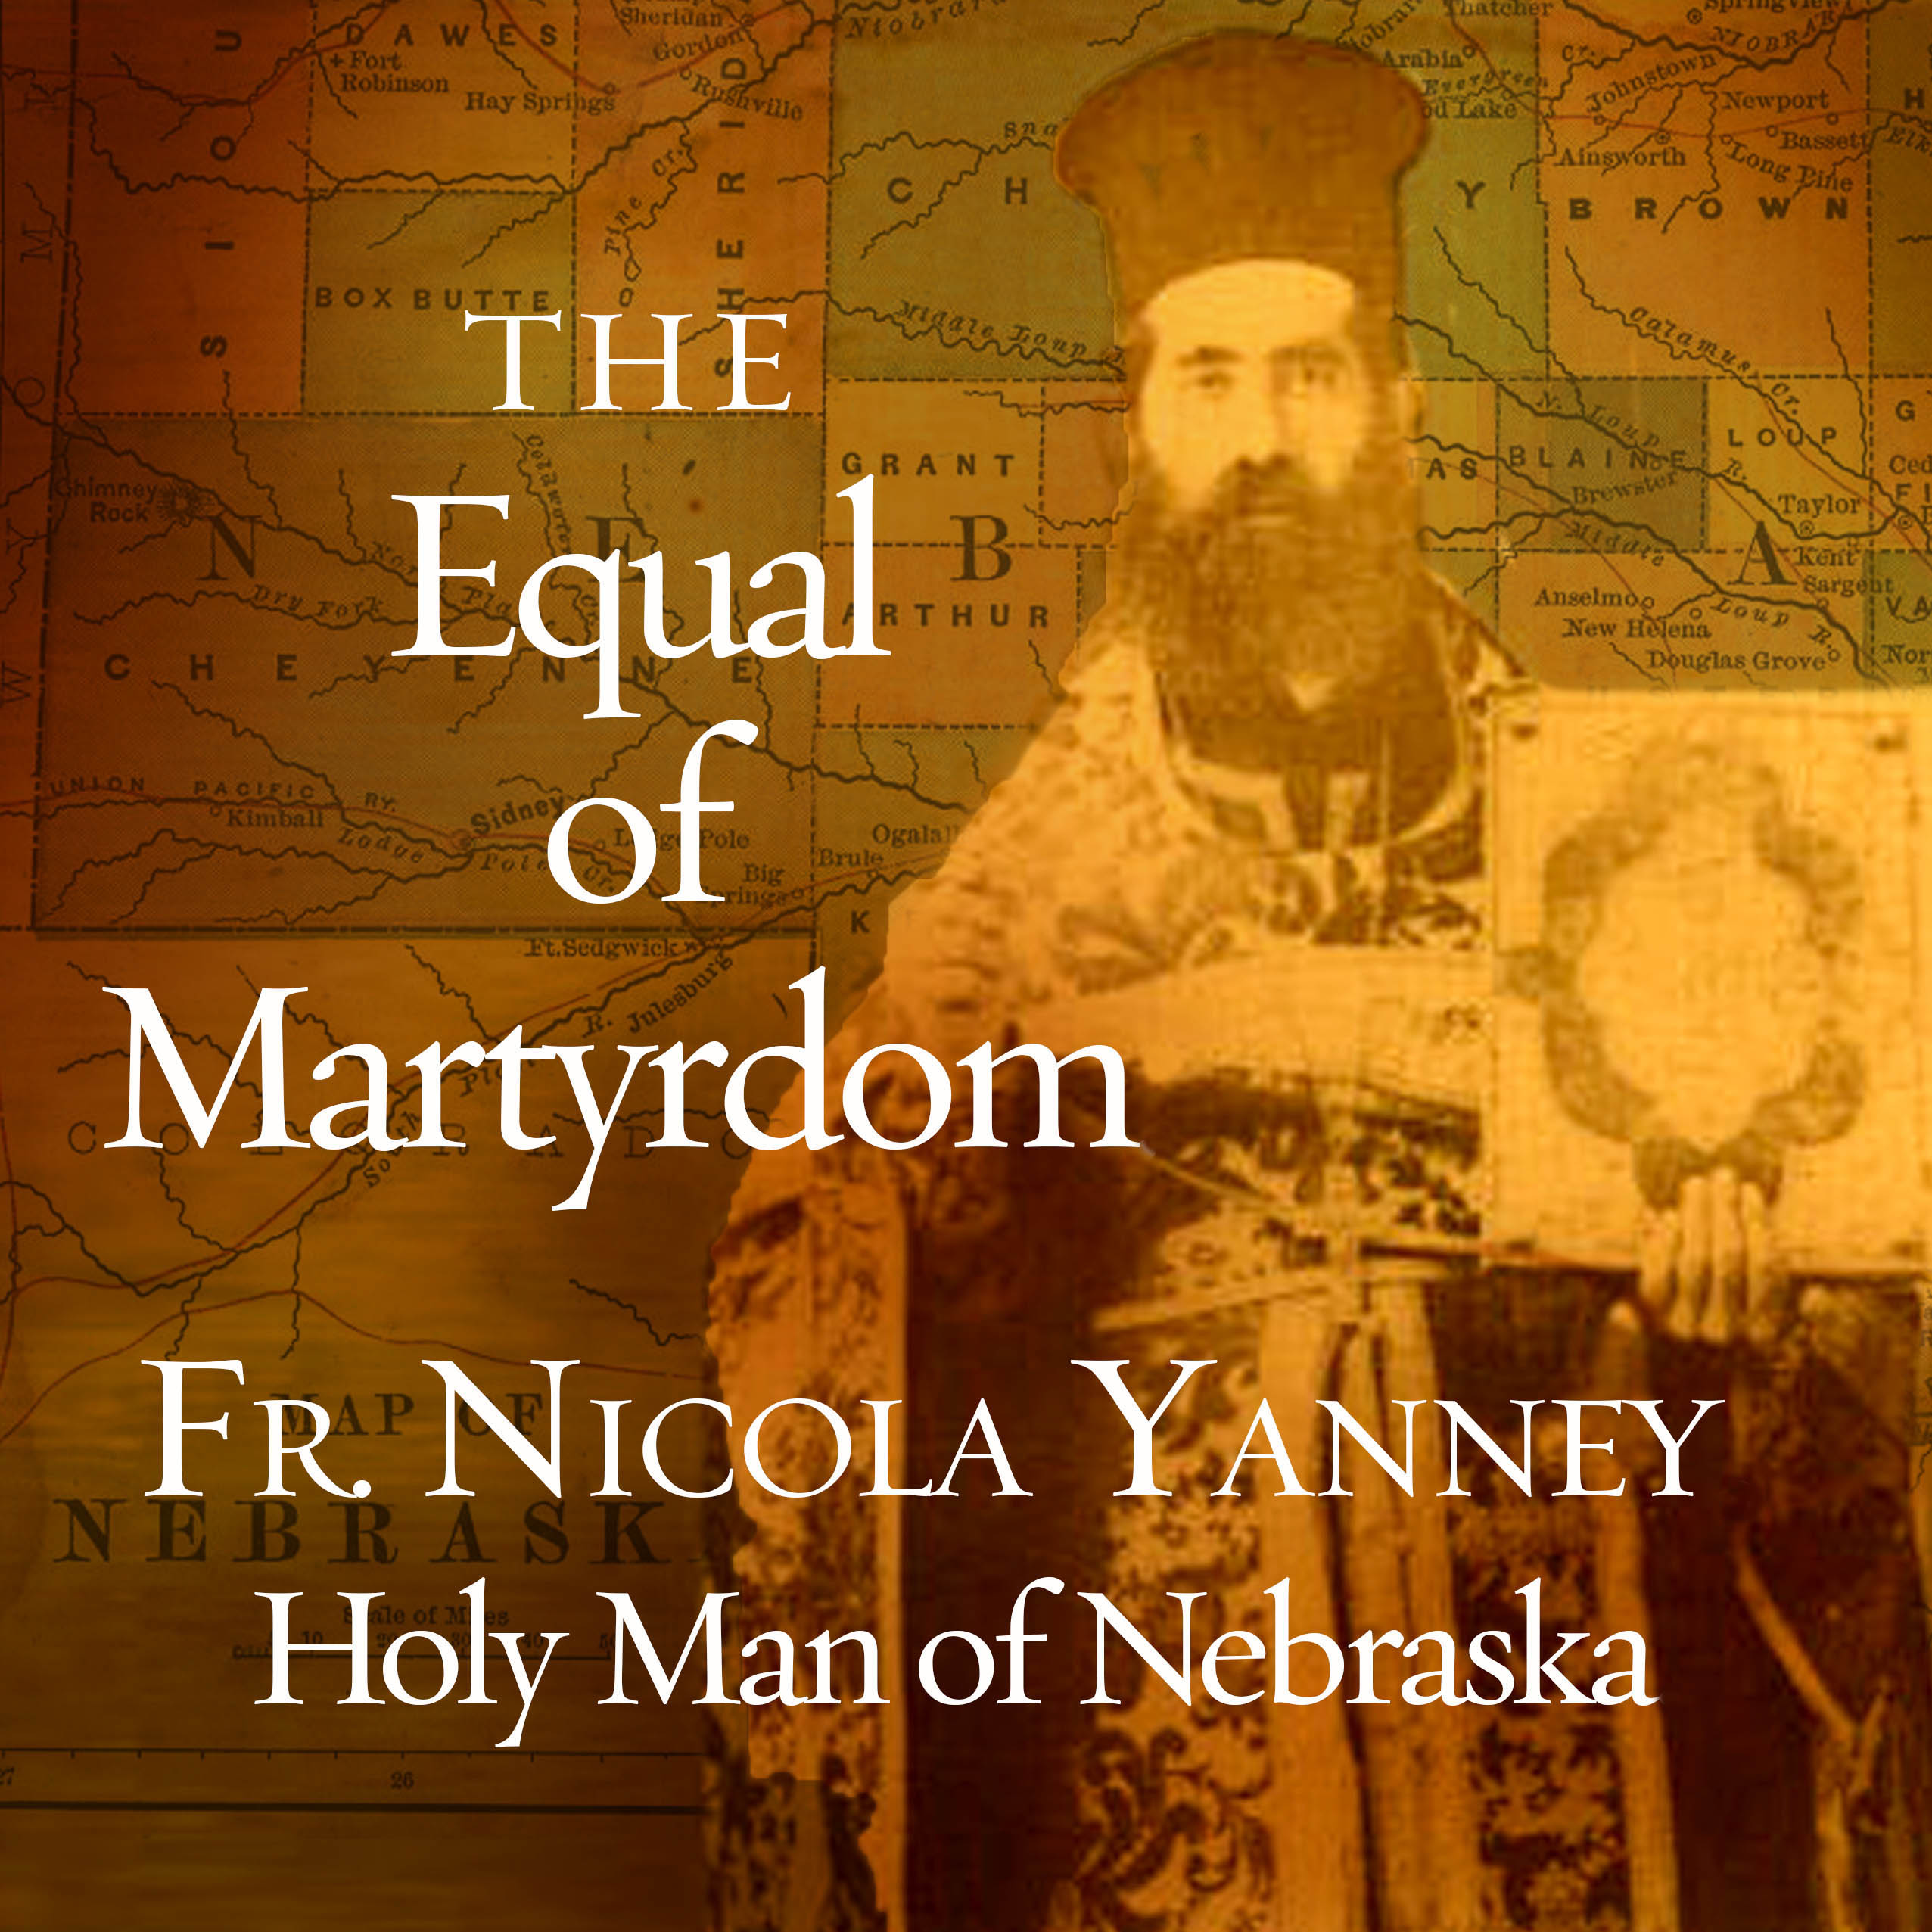 Fr. Nicola Yanney: Sermon by Bishop Basil